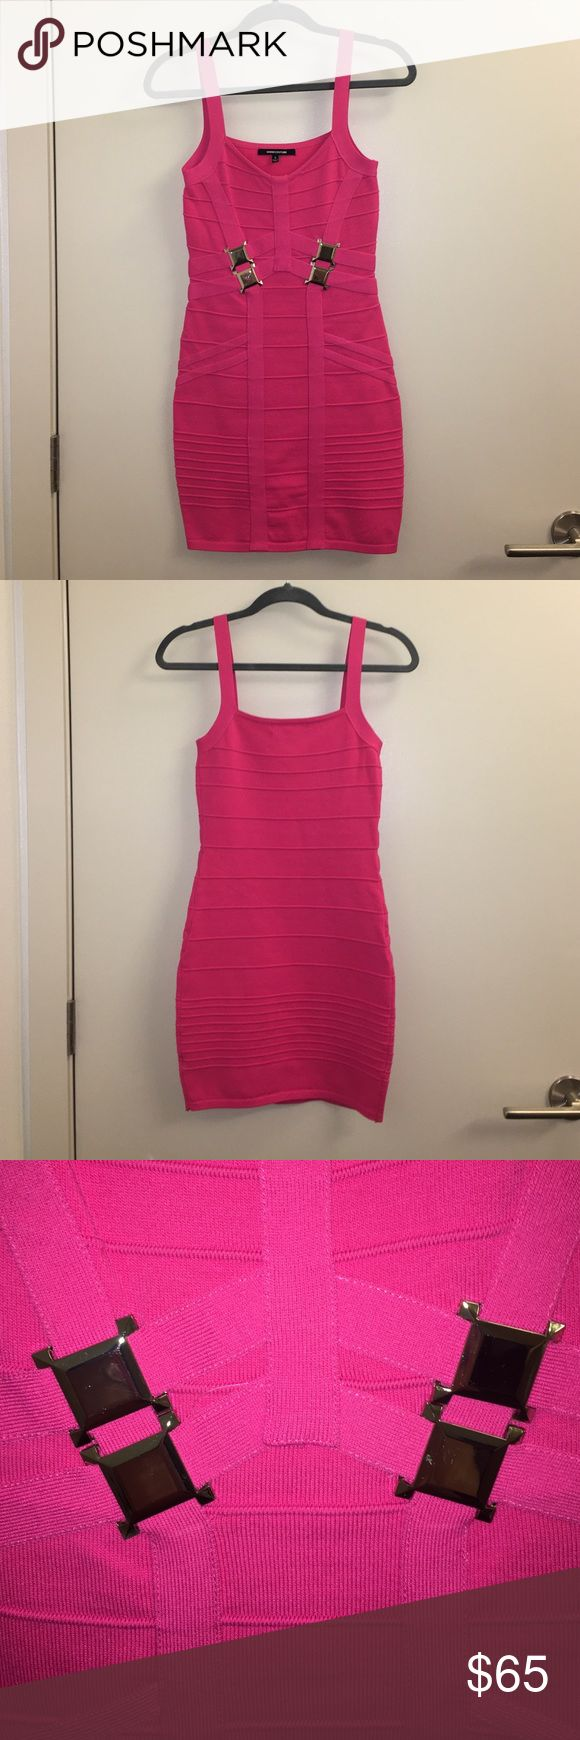 Sexy hot pink bandage dress, silver buckle detail Sexy, short, hot pink bandage dress with silver buckle detail. Size SMALL, only worn a few times. WOW couture Dresses